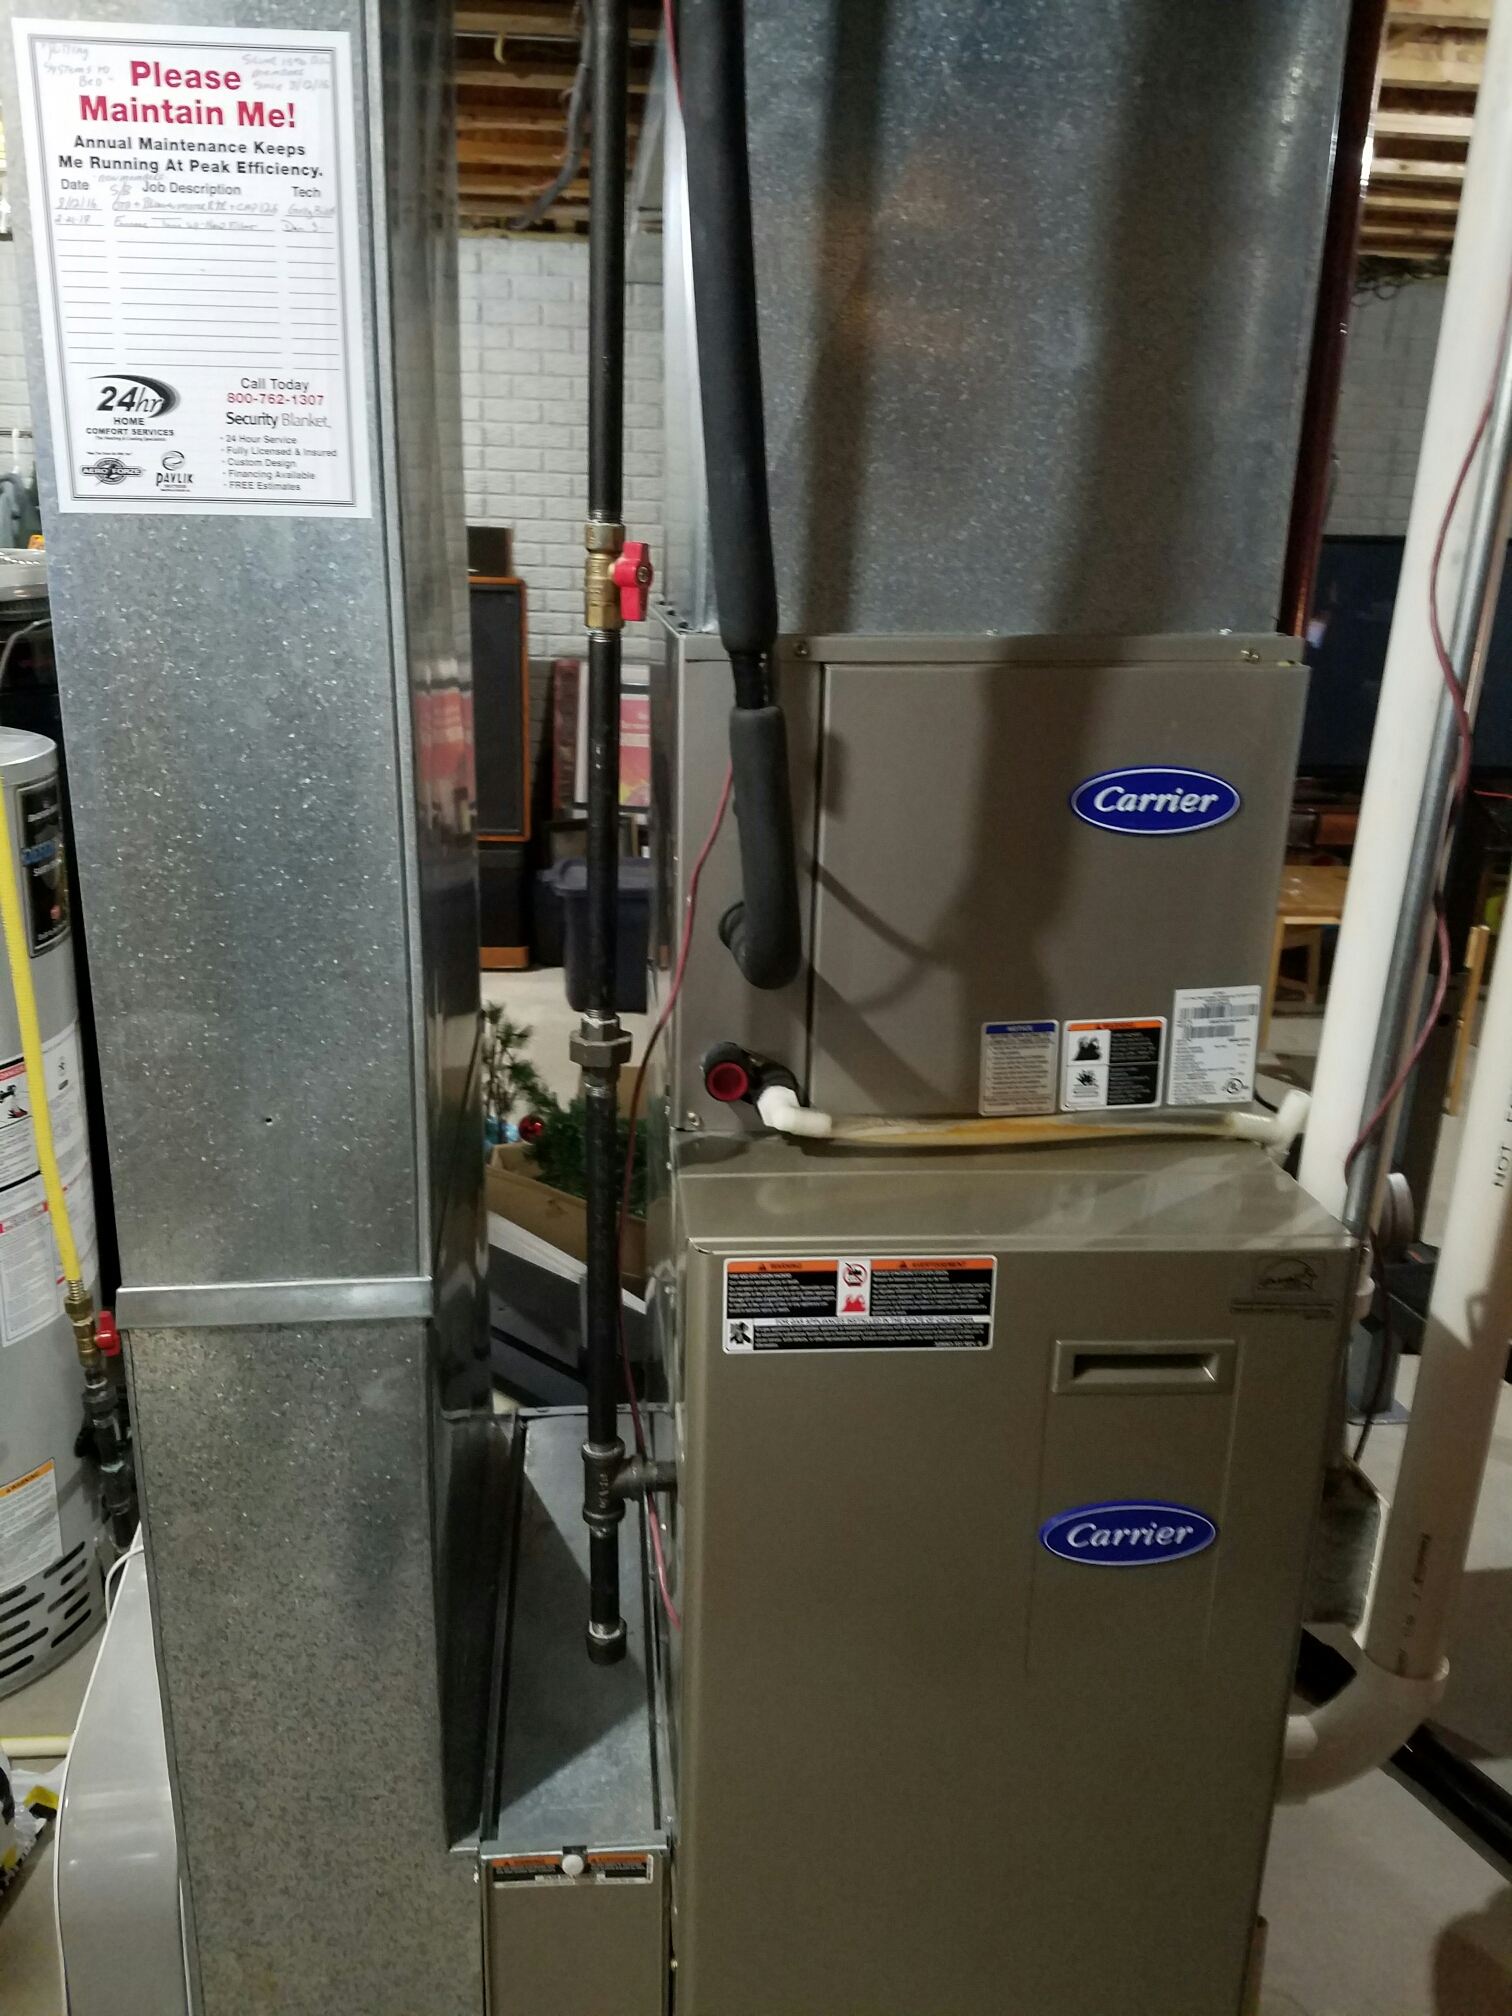 Oconomowoc, WI - Maintenance on a Carrier Furnace